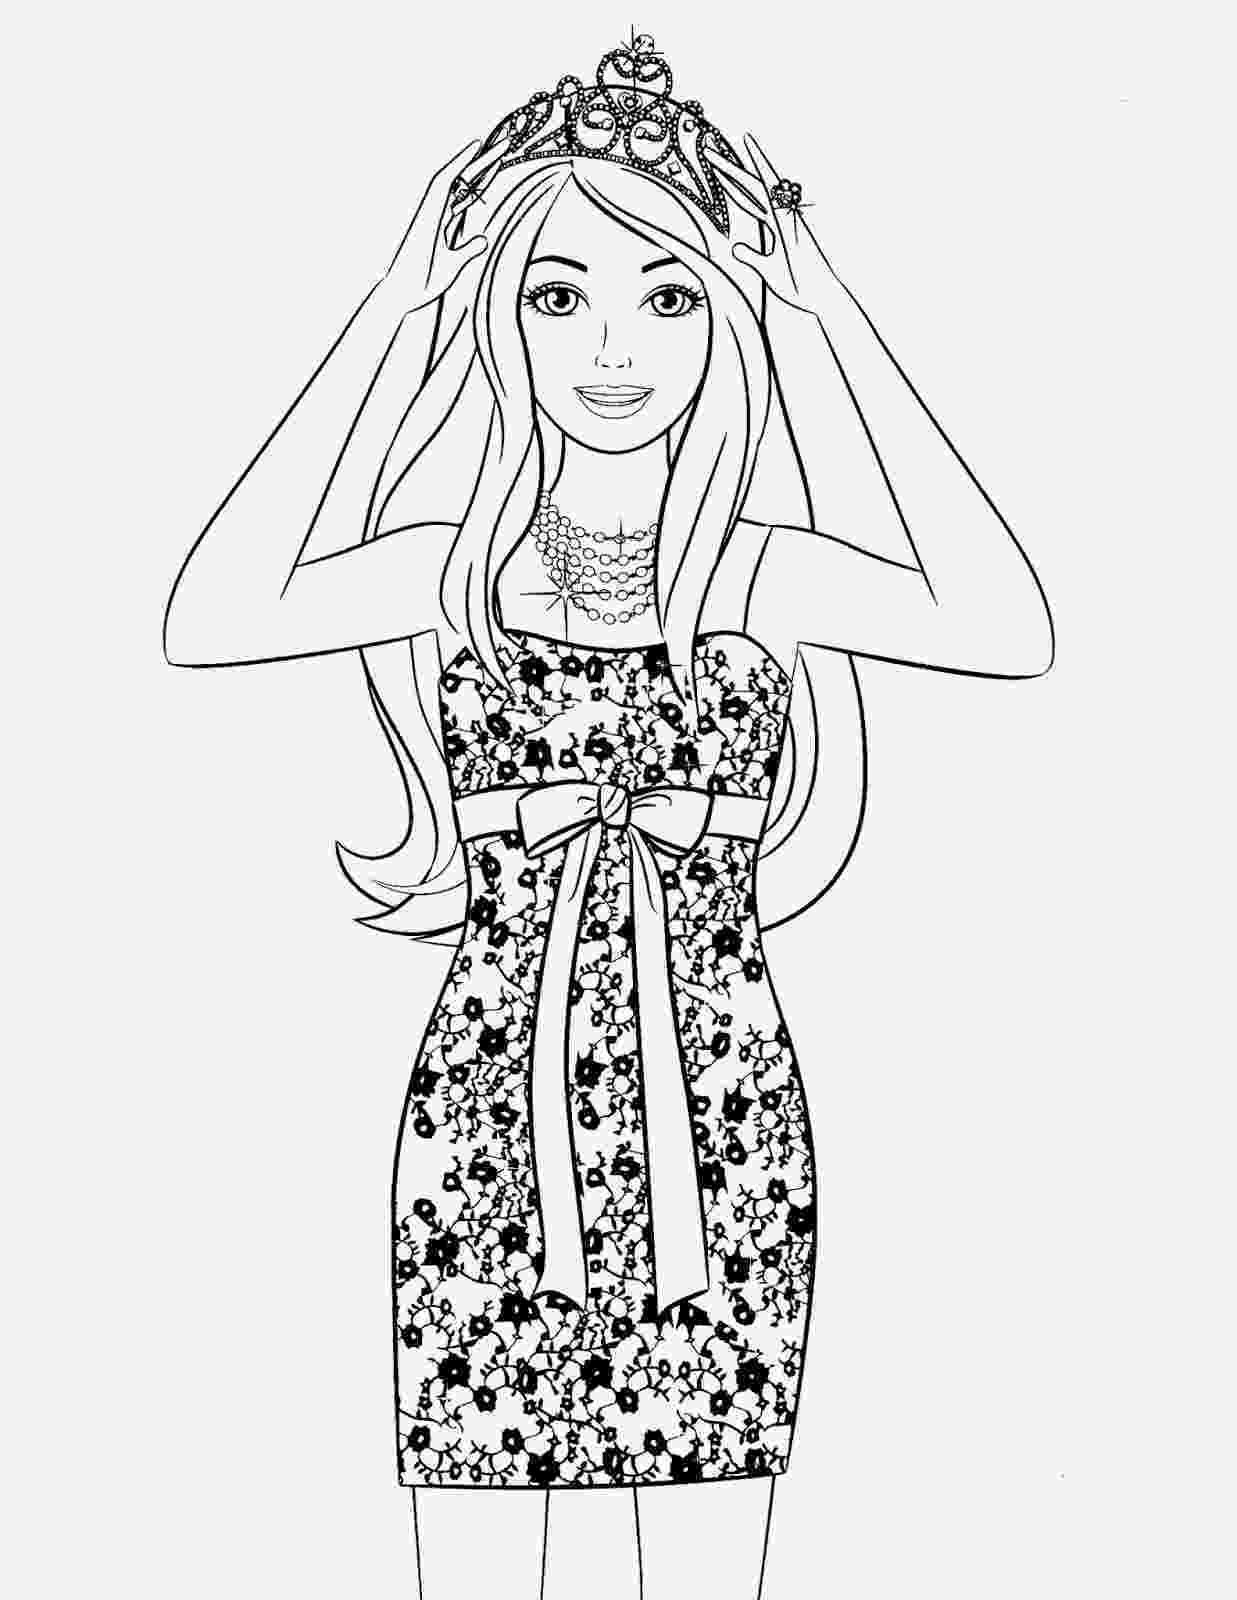 barbie girl colouring pictures 85 barbie coloring pages for girls barbie princess colouring barbie pictures girl 1 1